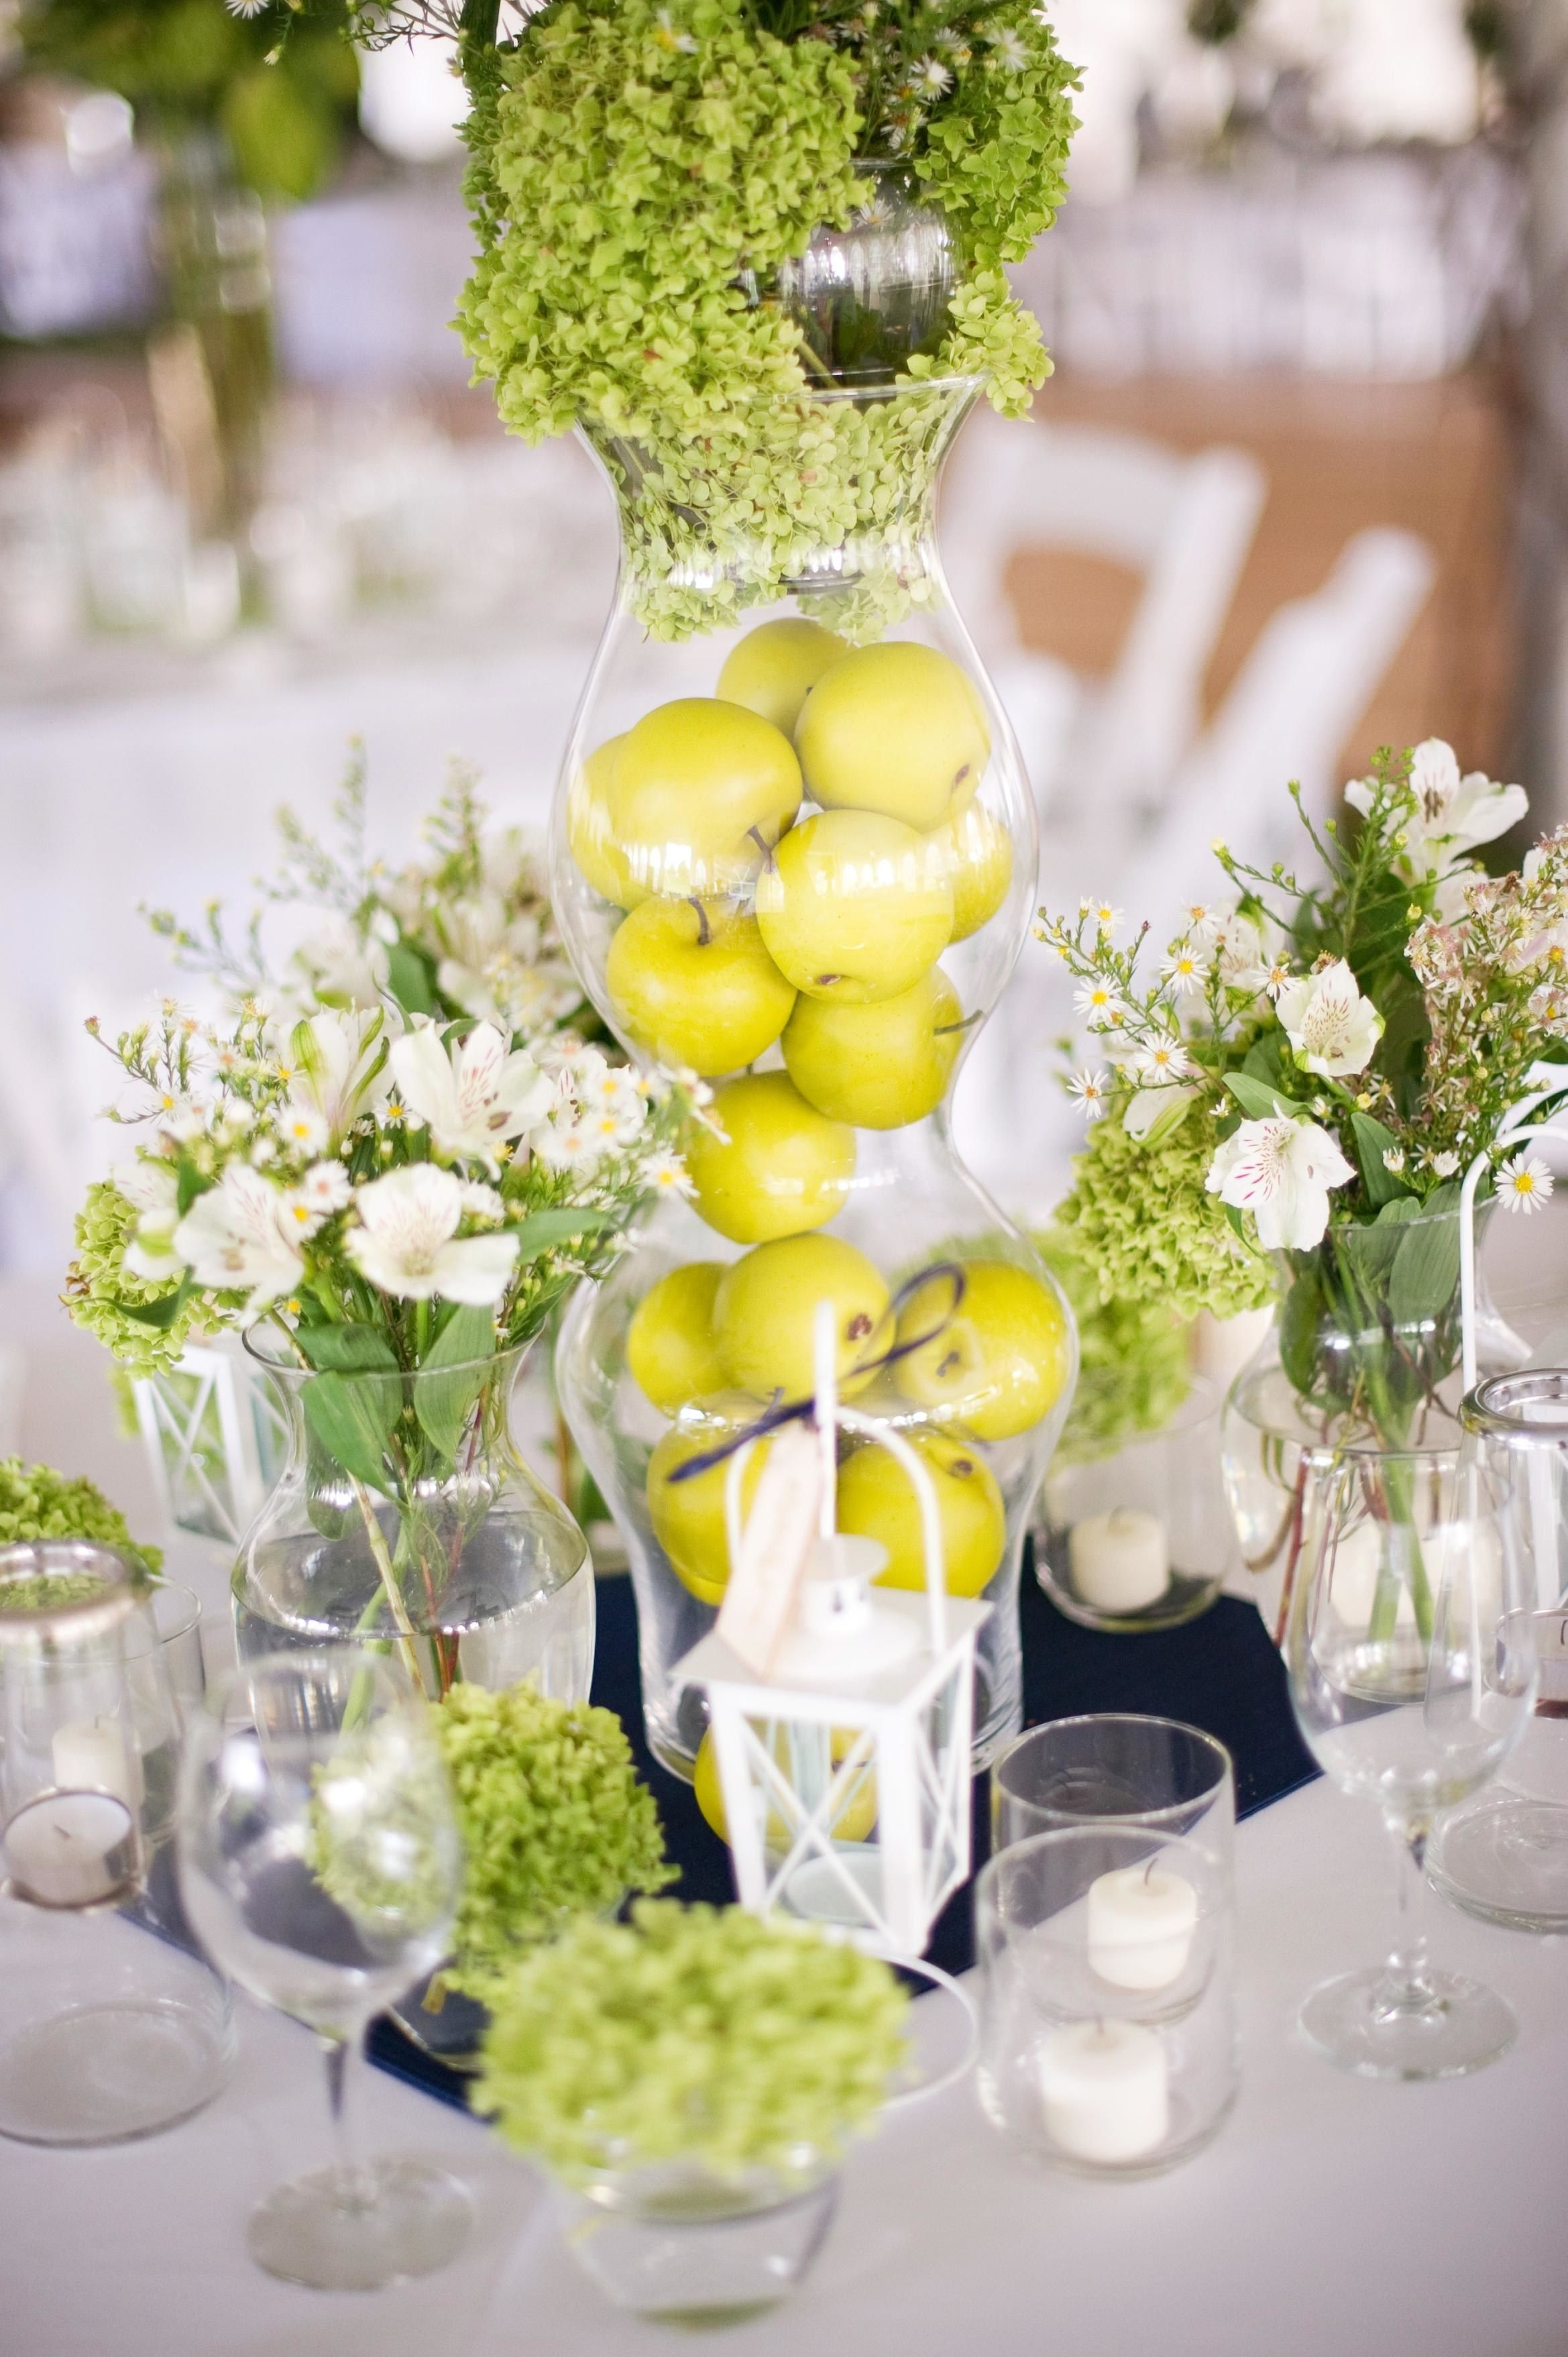 25 Wedding Centerpieces With Fruit And Other Fresh Ingredients